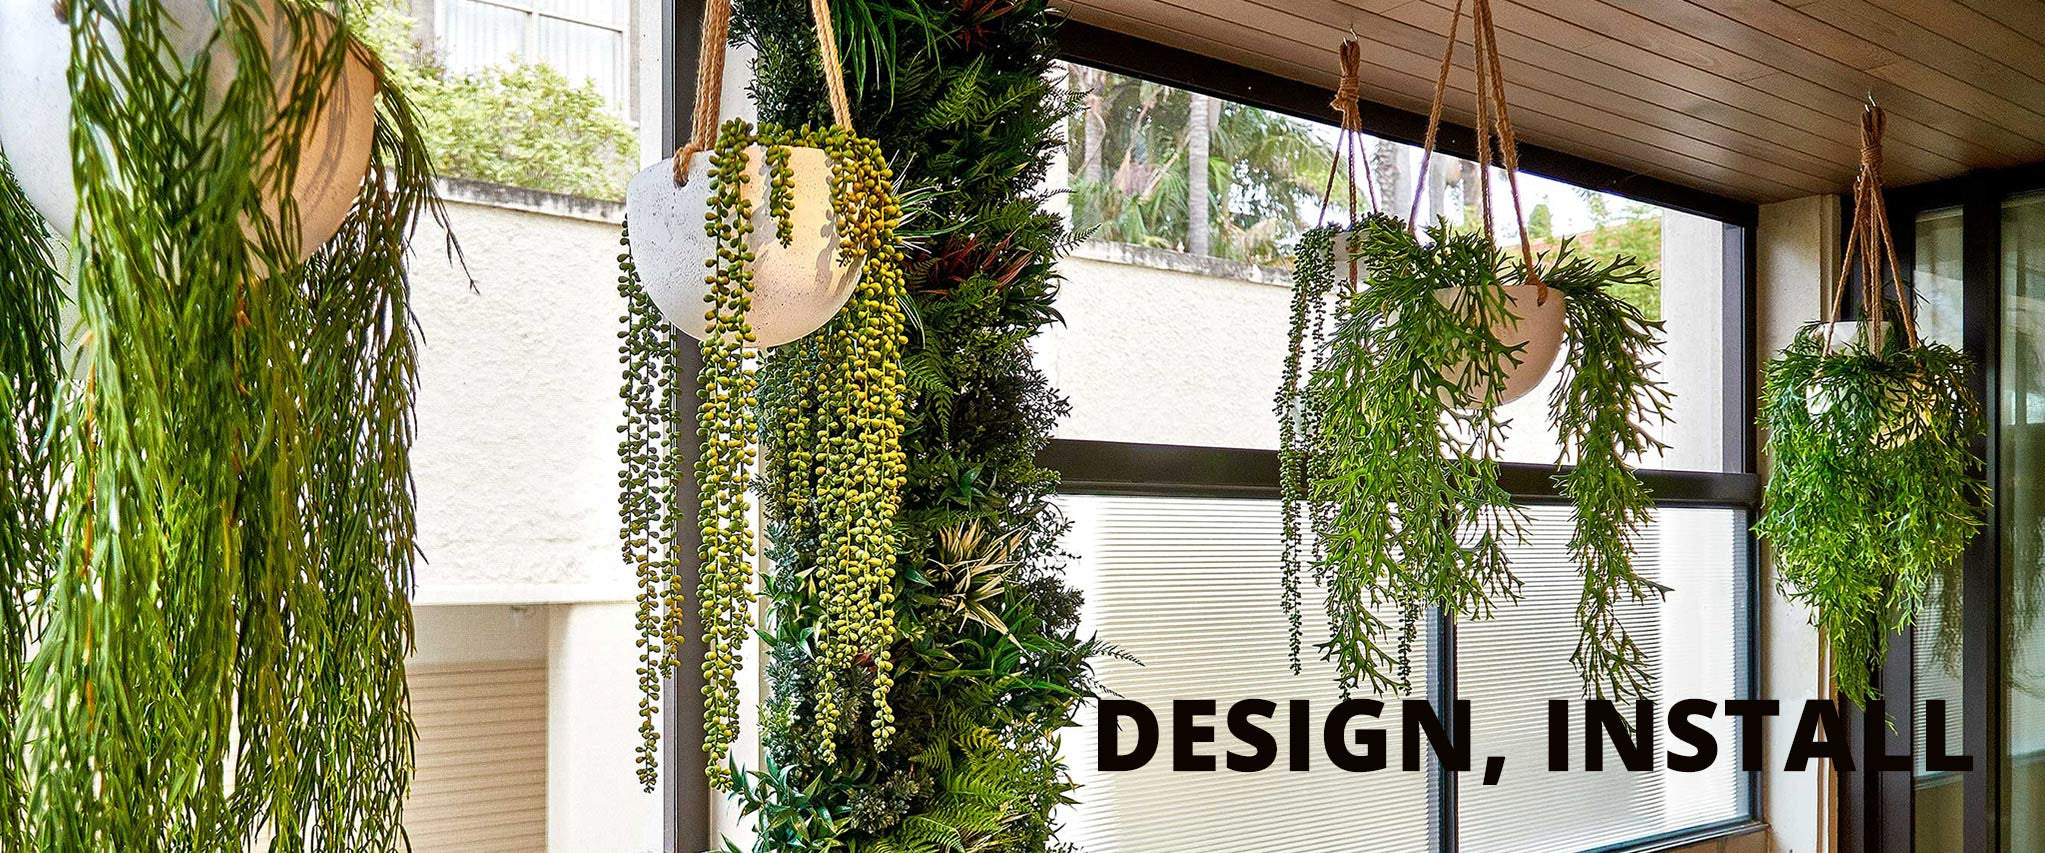 vertical garden with hanging plants